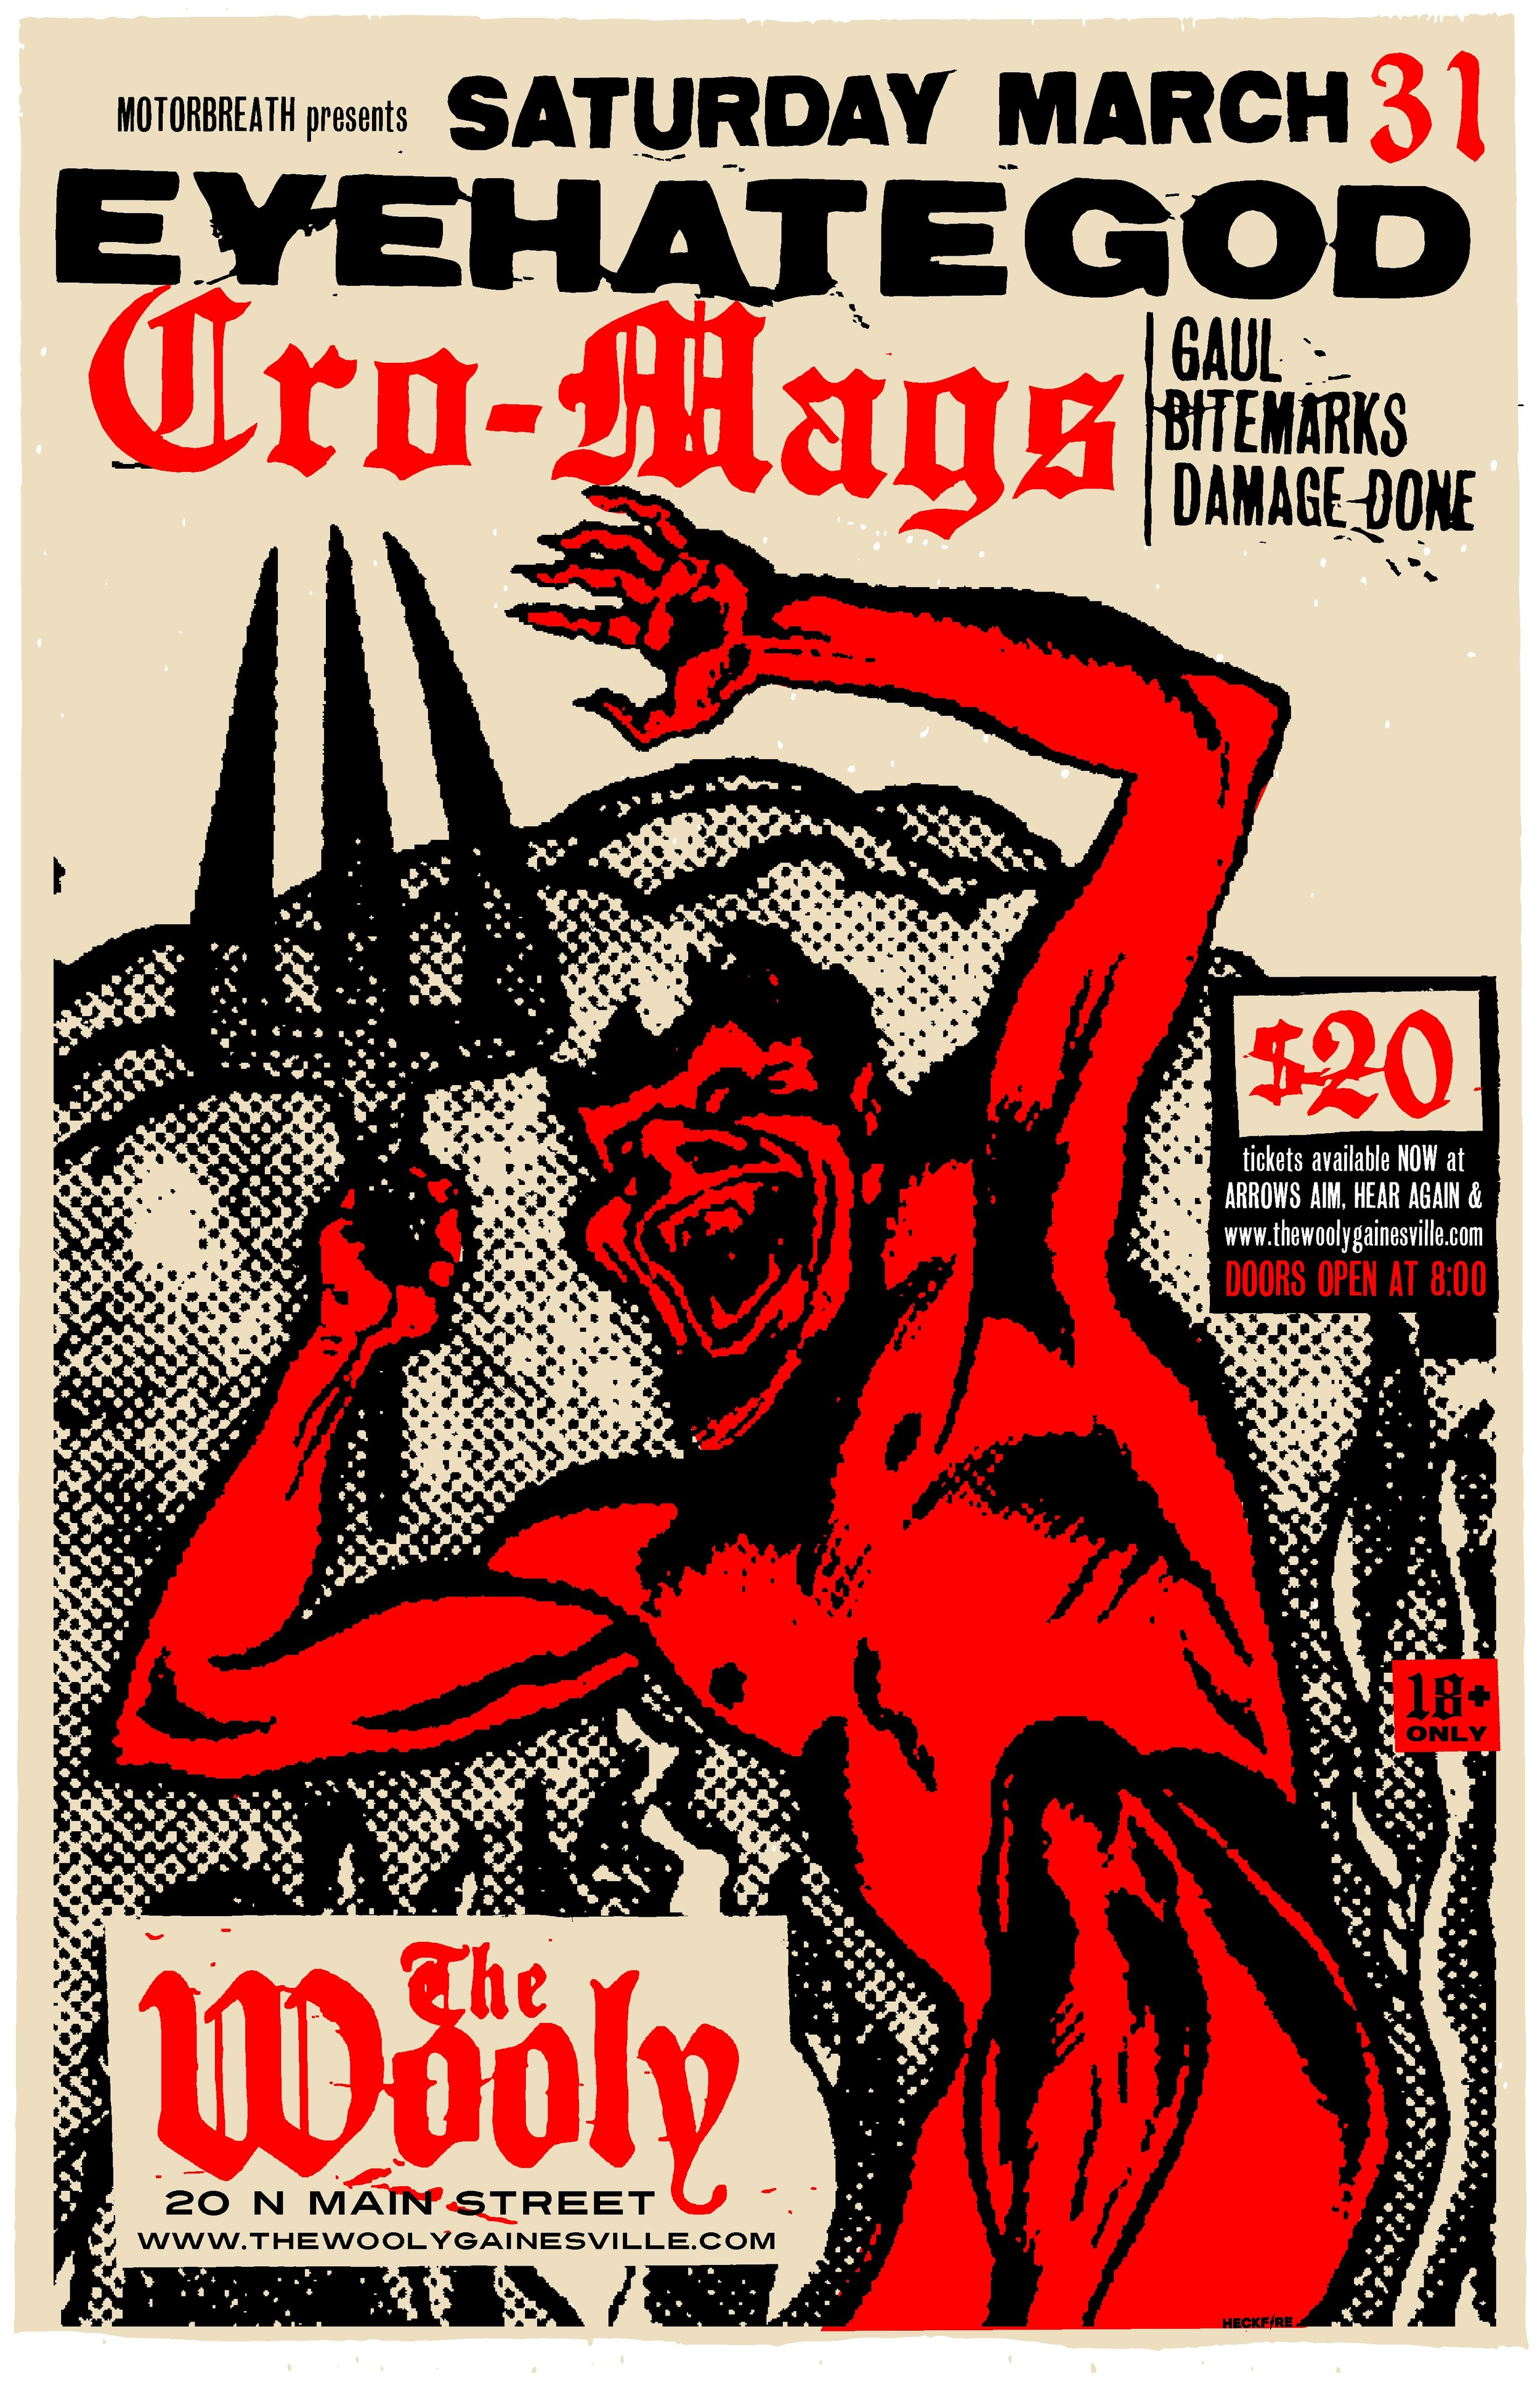 """Saturday, March 31st Motorbreath GVL Presents:  EYEHATEGOD (30th Anniversary Tour) Cro-Mags Gaul, Bite Marks, Damage Done  Doors at 8pm $20  Buy tickets  Physical tickets available soon at Arrow's Aim Records  at The Wooly 20 N Main Street Downtown Gainesville FL 32601  ///////////////////////  EYEHATEGOD:  https://www.youtube.com/watch?v=zoqAjL_3mBI   http://eyehategod.ee/   https://www.instagram.com/eyehategodnola/   https://www.facebook.com/OfficialEyeHateGod   https://twitter.com/EyehategodNola   Eyehategod (also abbreviated and referred to as EHG) is an American sludge metal band from New Orleans who formed in 1988.[1] They have become one of the most well known bands to emerge from the NOLA metal scene. Throughout the years, their core line-up has remained.  Eyehategod have noted Melvins, Carnivore, The Obsessed, Discharge, Black Flag, Corrosion of Conformity, Black Sabbath, Celtic Frost, Confessor and Saint Vitus[2] as key influences to their sound. Heavy, detuned, and bluesy guitar riffs dominate the band's discography. They are combined with walls of feedback and tortured vocals to create a harsh misanthropic vibe.  ///////////////////////  CRO MAGS:  http://www.cro-mags.com/   https://www.facebook.com/Cro-Mags-28749578197/   https://www.youtube.com/watch?v=0BLcCM8nPYQ   The Cro-Mags are an American hardcore punk turned crossover thrash band from New York City. The band, which had a strong cult following, has released five studio albums, their first two considered the most influential. According to AllMusic, """"before the Cro-Mags, the idea of combining heavy metal and hardcore together was unheard of. But with the release of their classic debut, The Age of Quarrel, hardcore-metal was born, and in its wake came a legion of similarly styled offspring (Biohazard, Vision of Disorder, etc.).""""    Things to know: -18+ only, unless legal guardian is present. -No Backpacks or Bags of any kind allowed inside the venue. -No smoking of any kind allowed inside."""